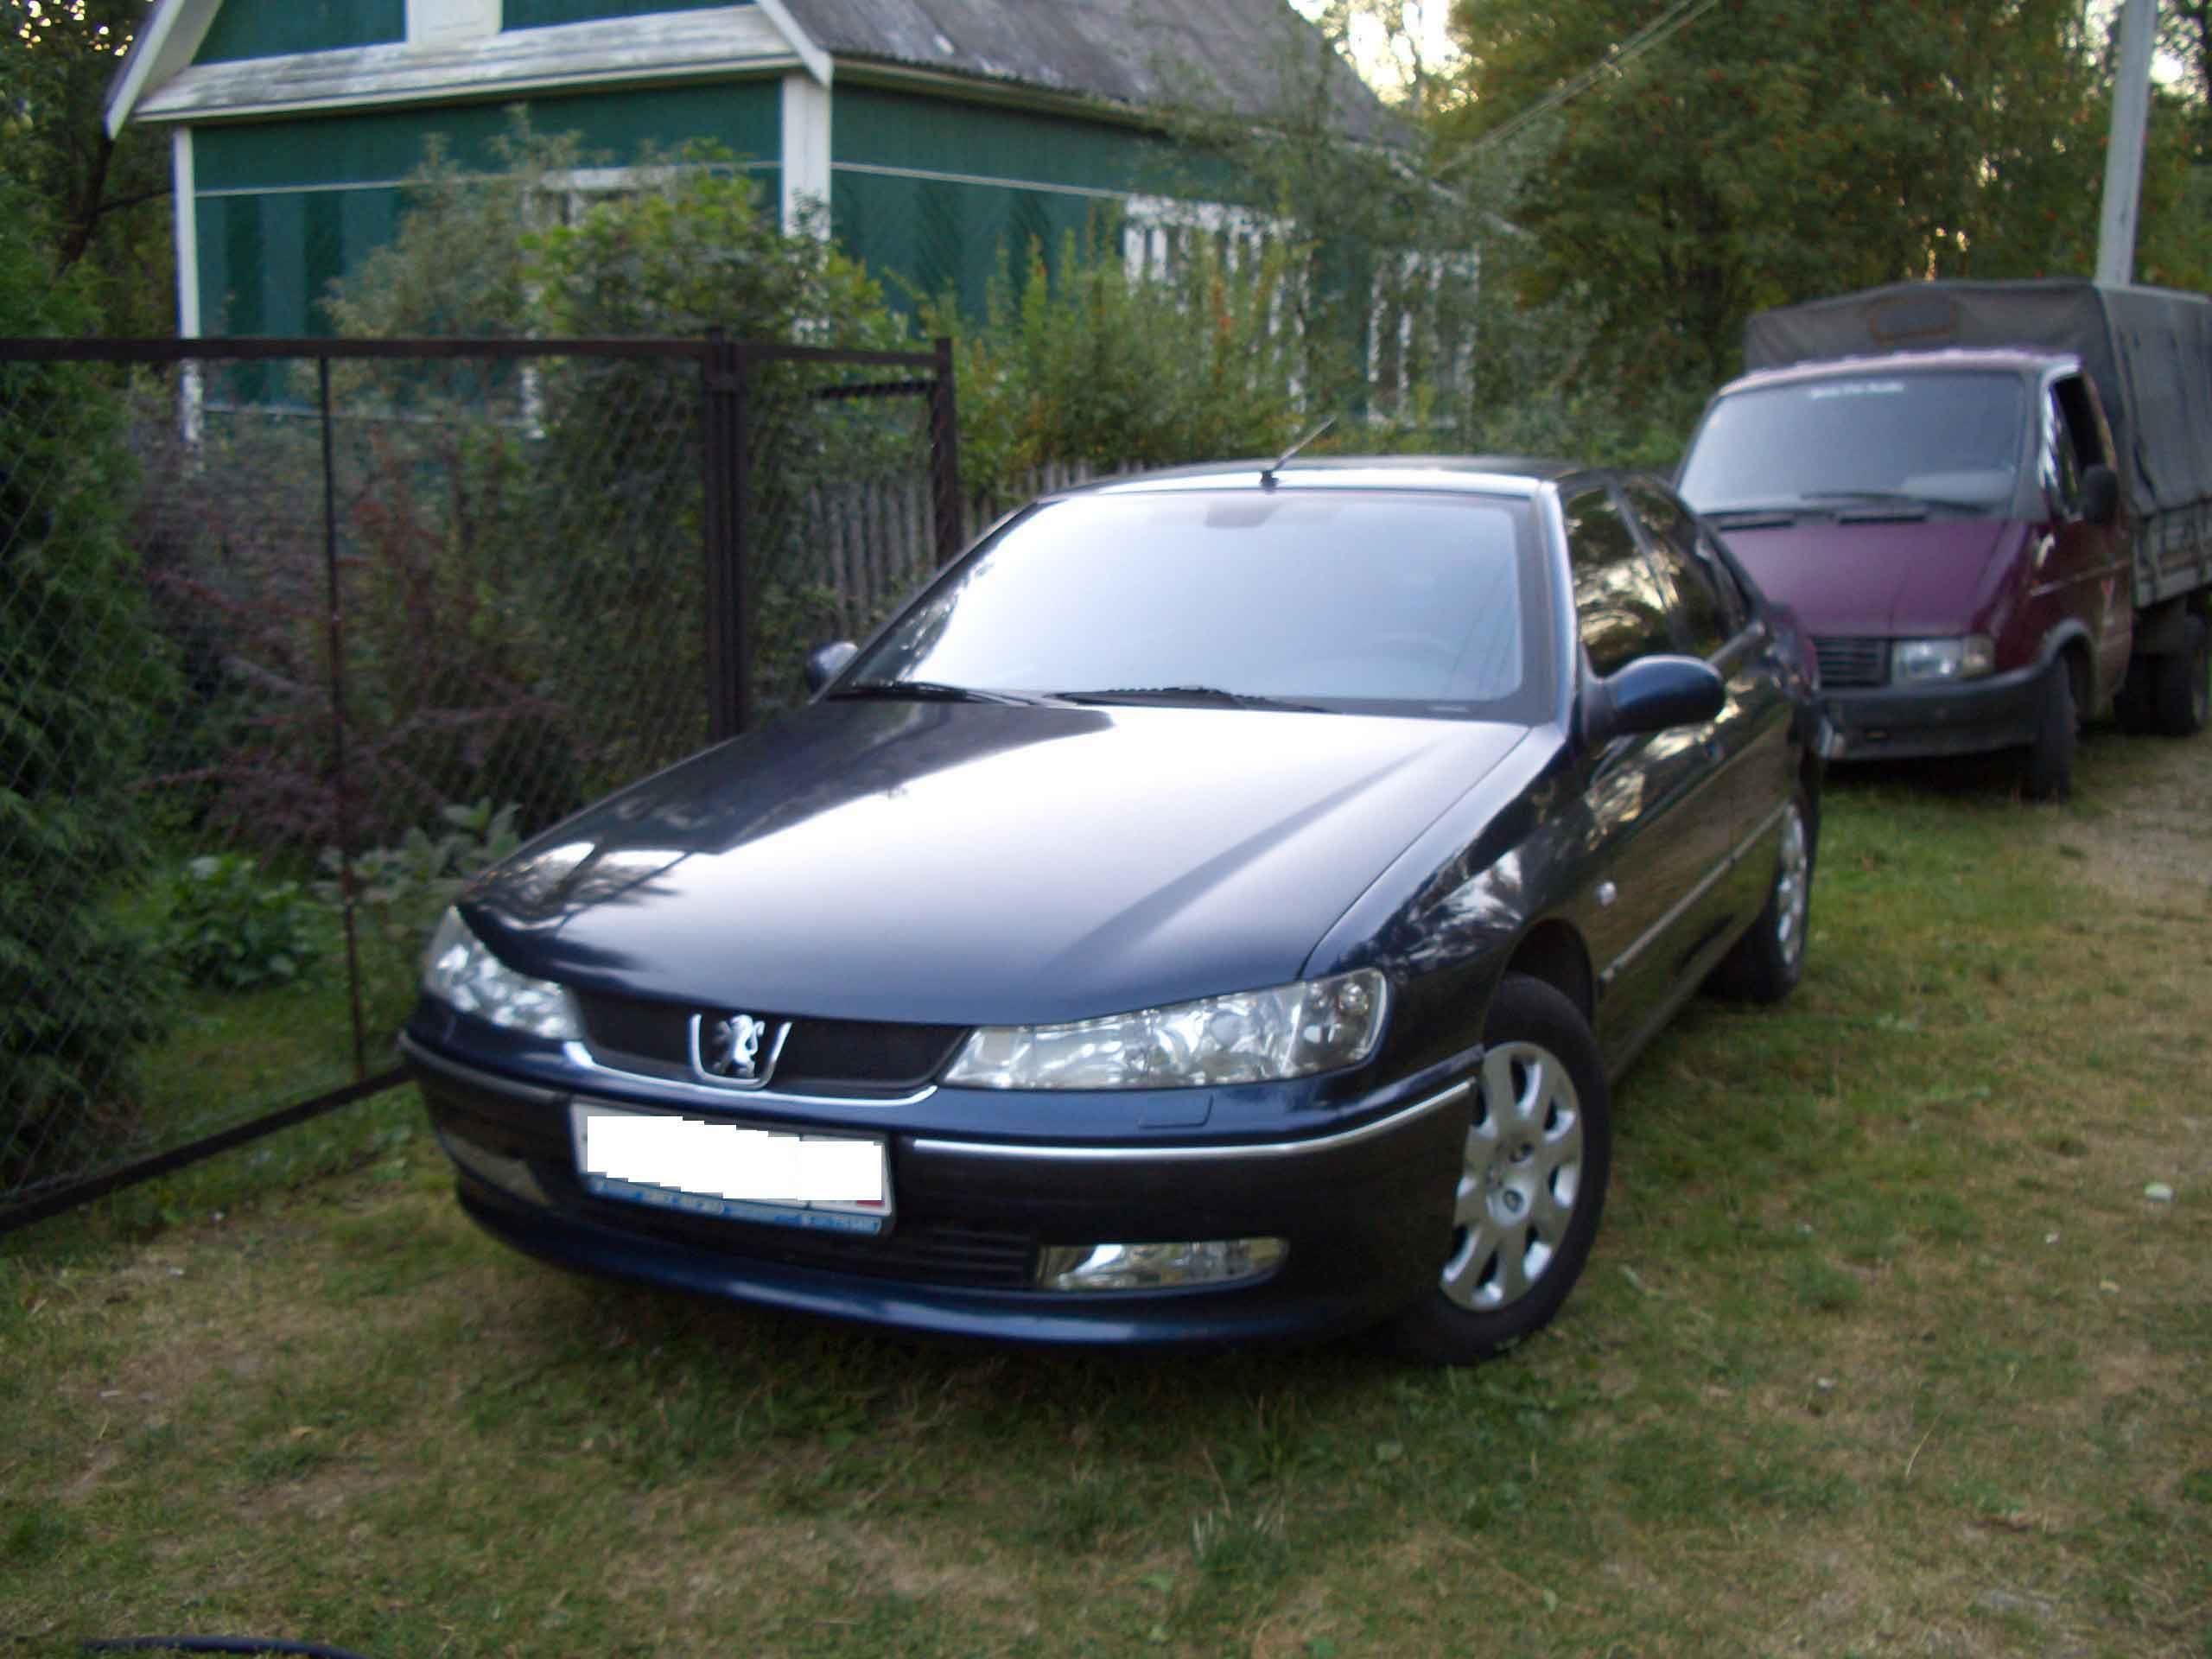 2003 peugeot 406 pictures 1800cc gasoline ff manual for sale rh cars directory net Peugeot 1958 Peugeot 1958